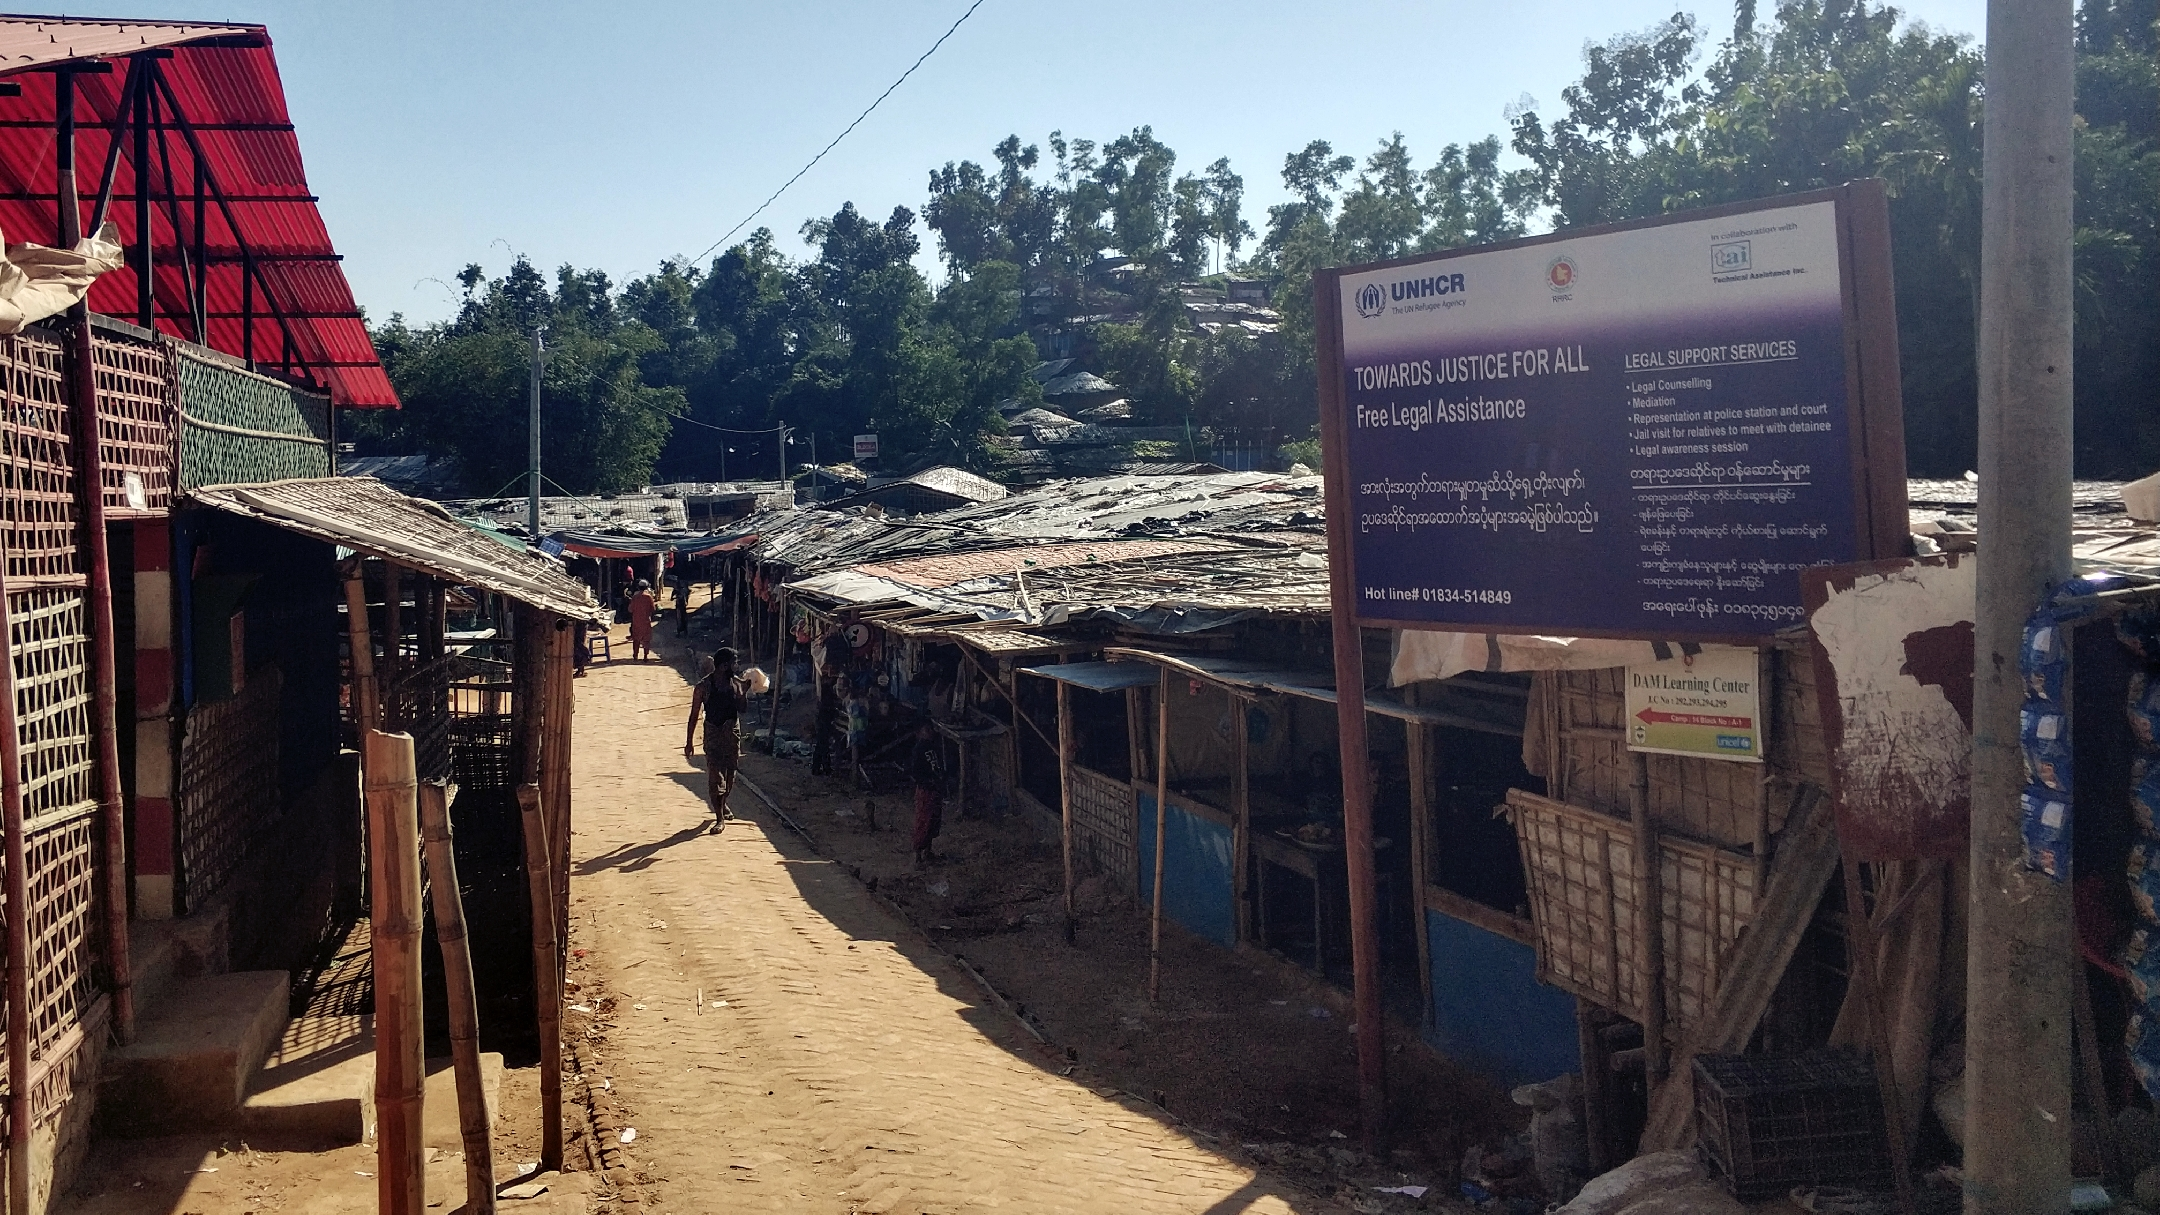 A legal assistance center supported by UNHCR at kutupalong refugee camp